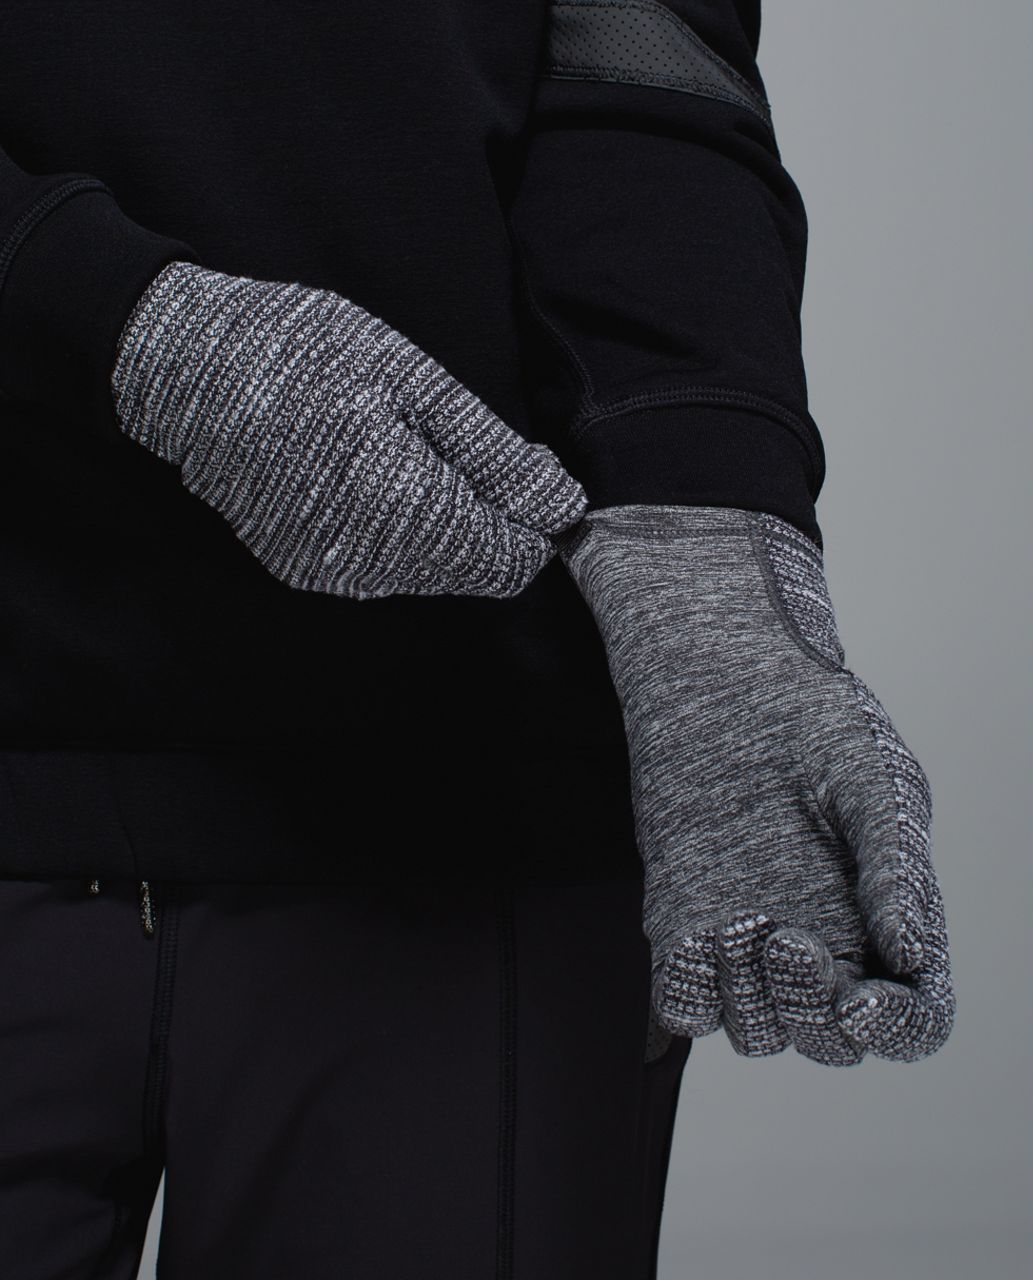 Lululemon Run With Me Gloves - Black (First Release)